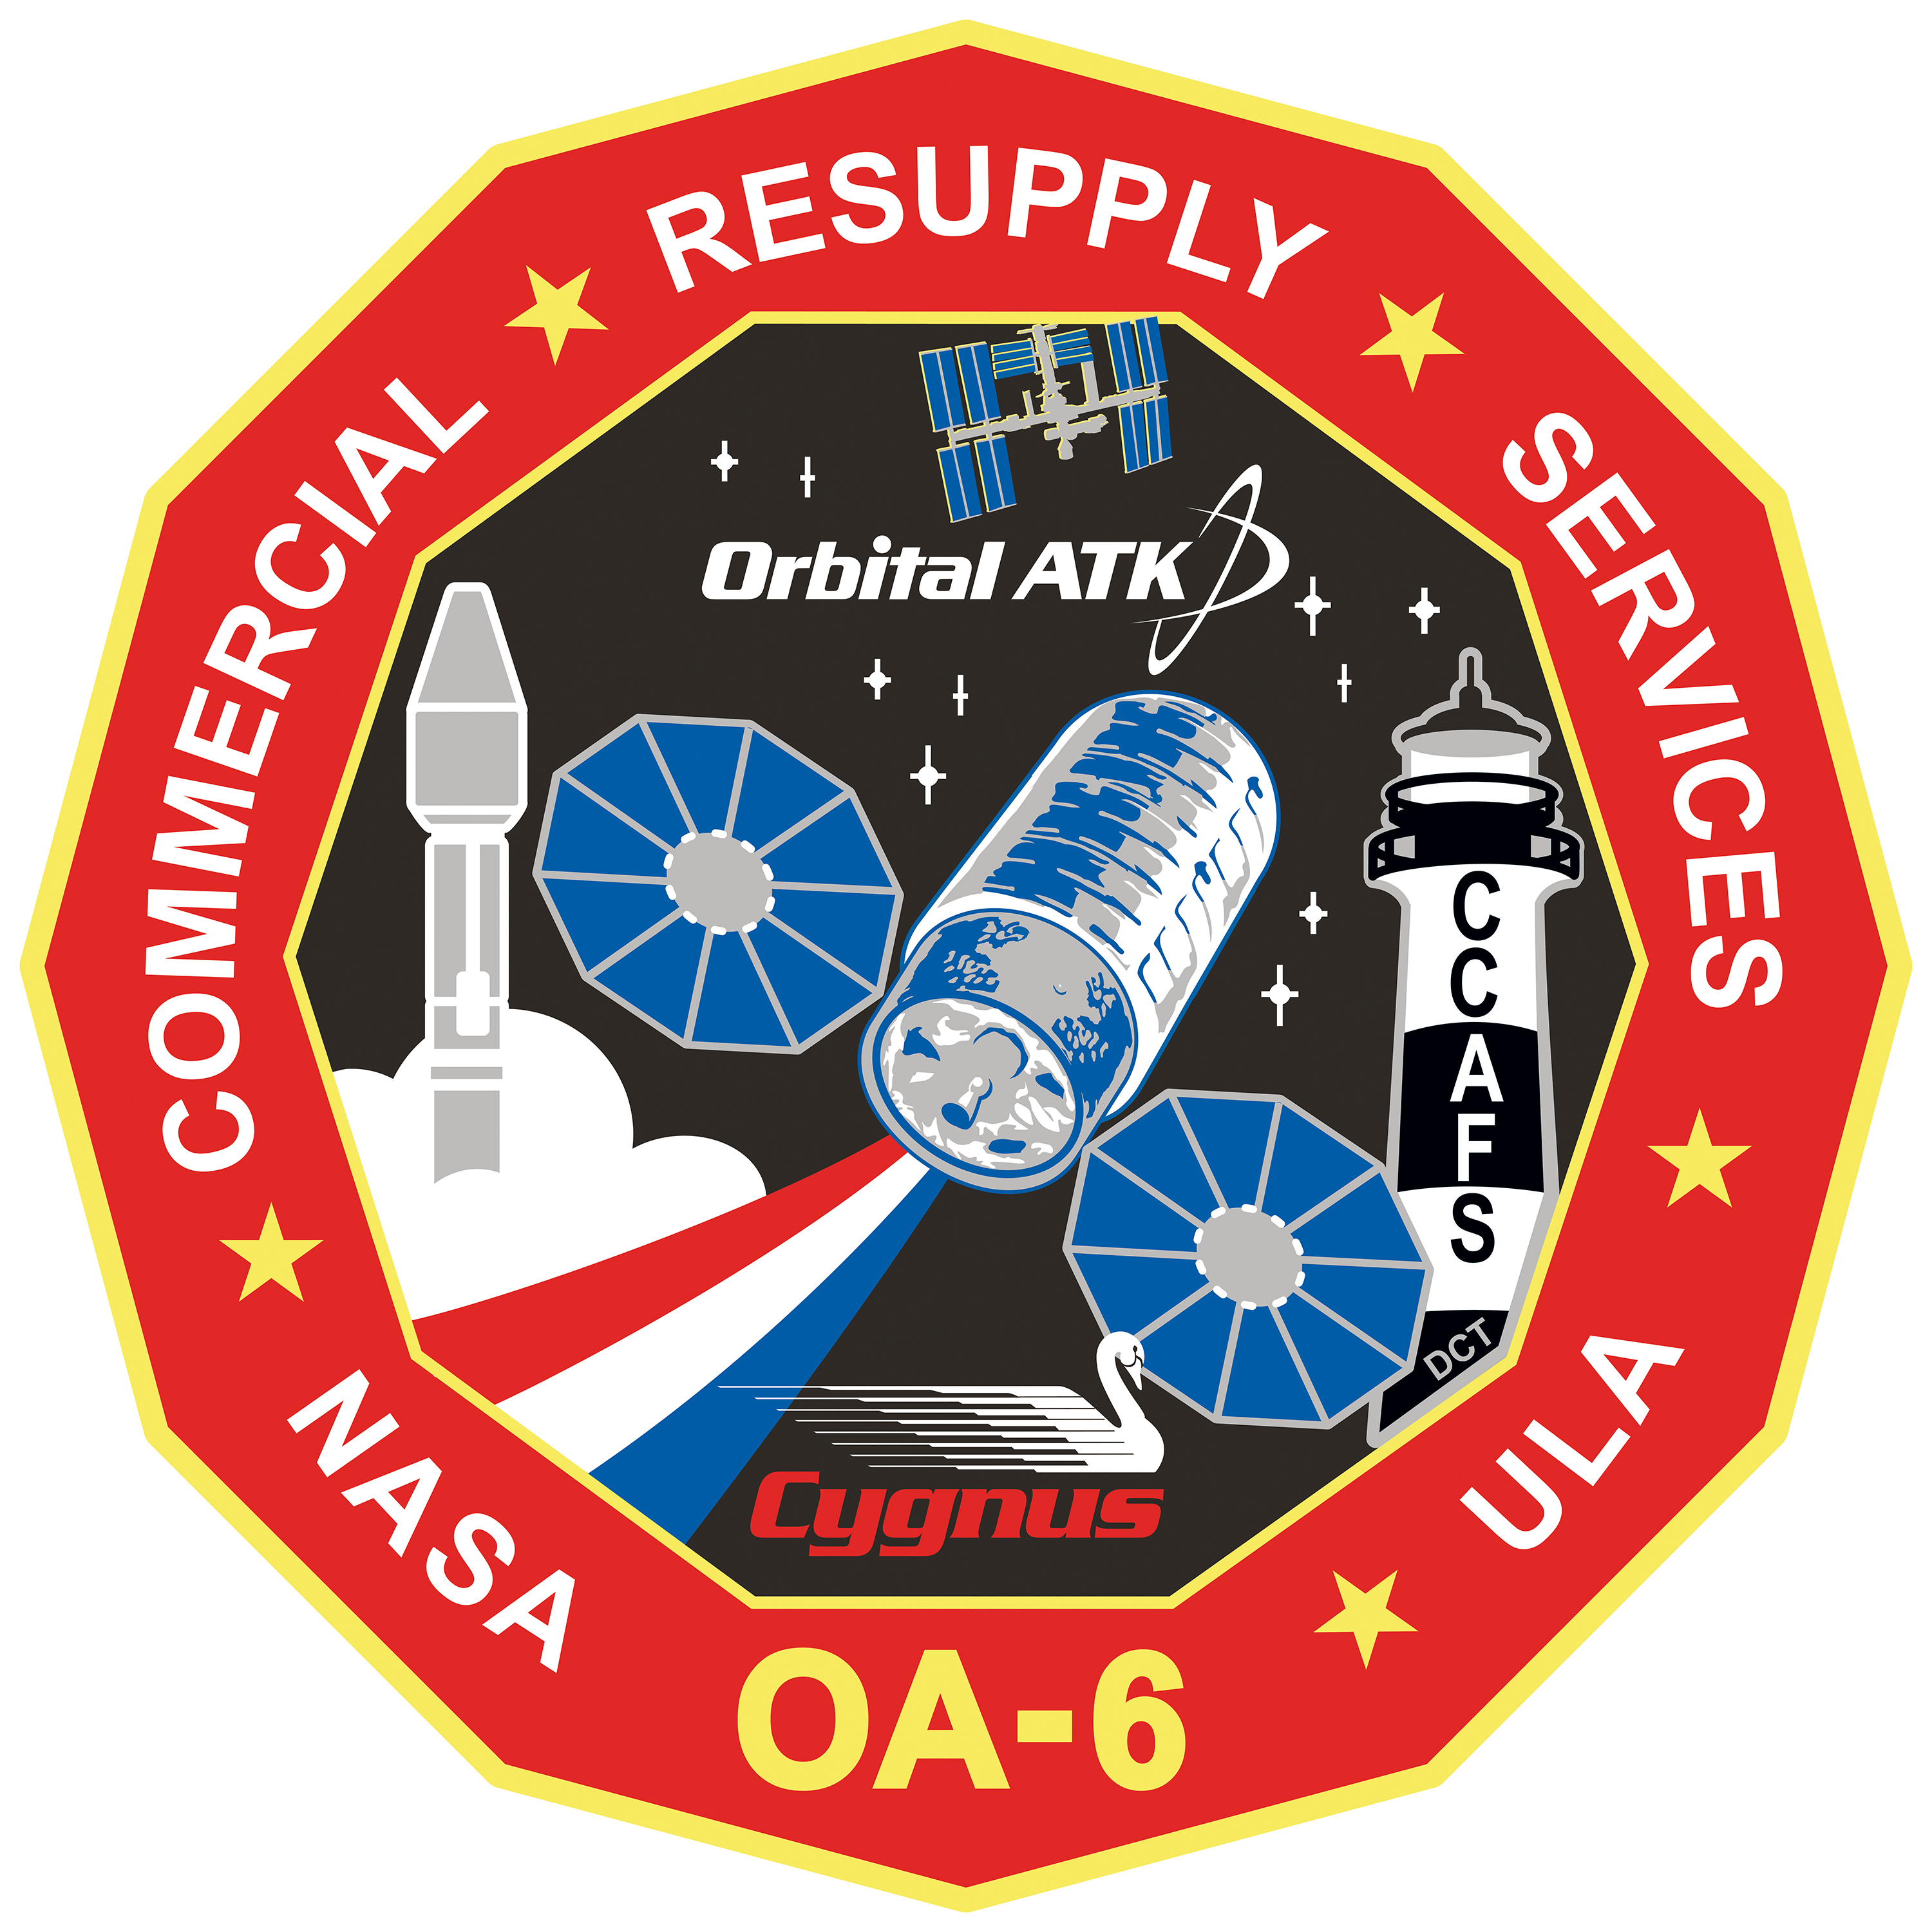 Nro mission patches activity